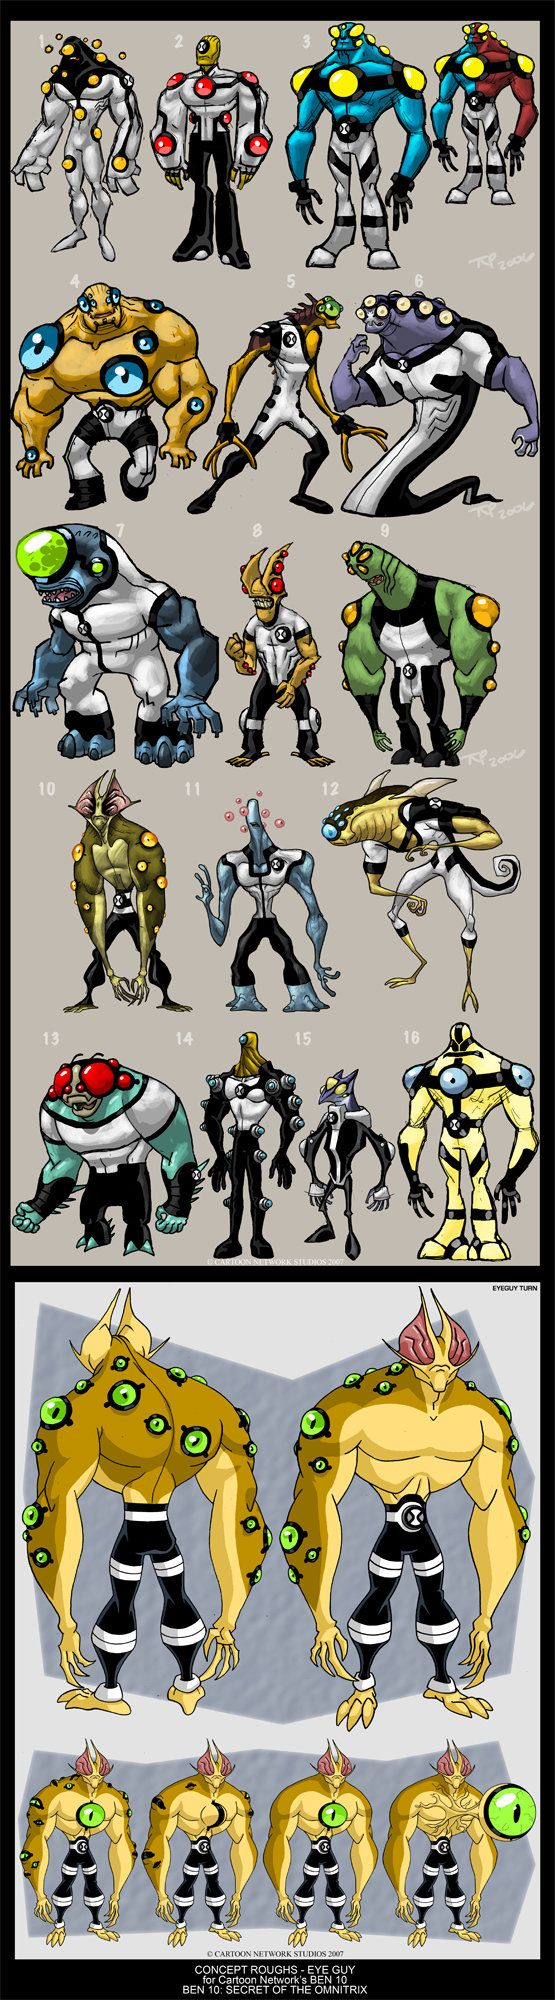 The Making of Bloxx! | Ben 10 | Pinterest | Criatura